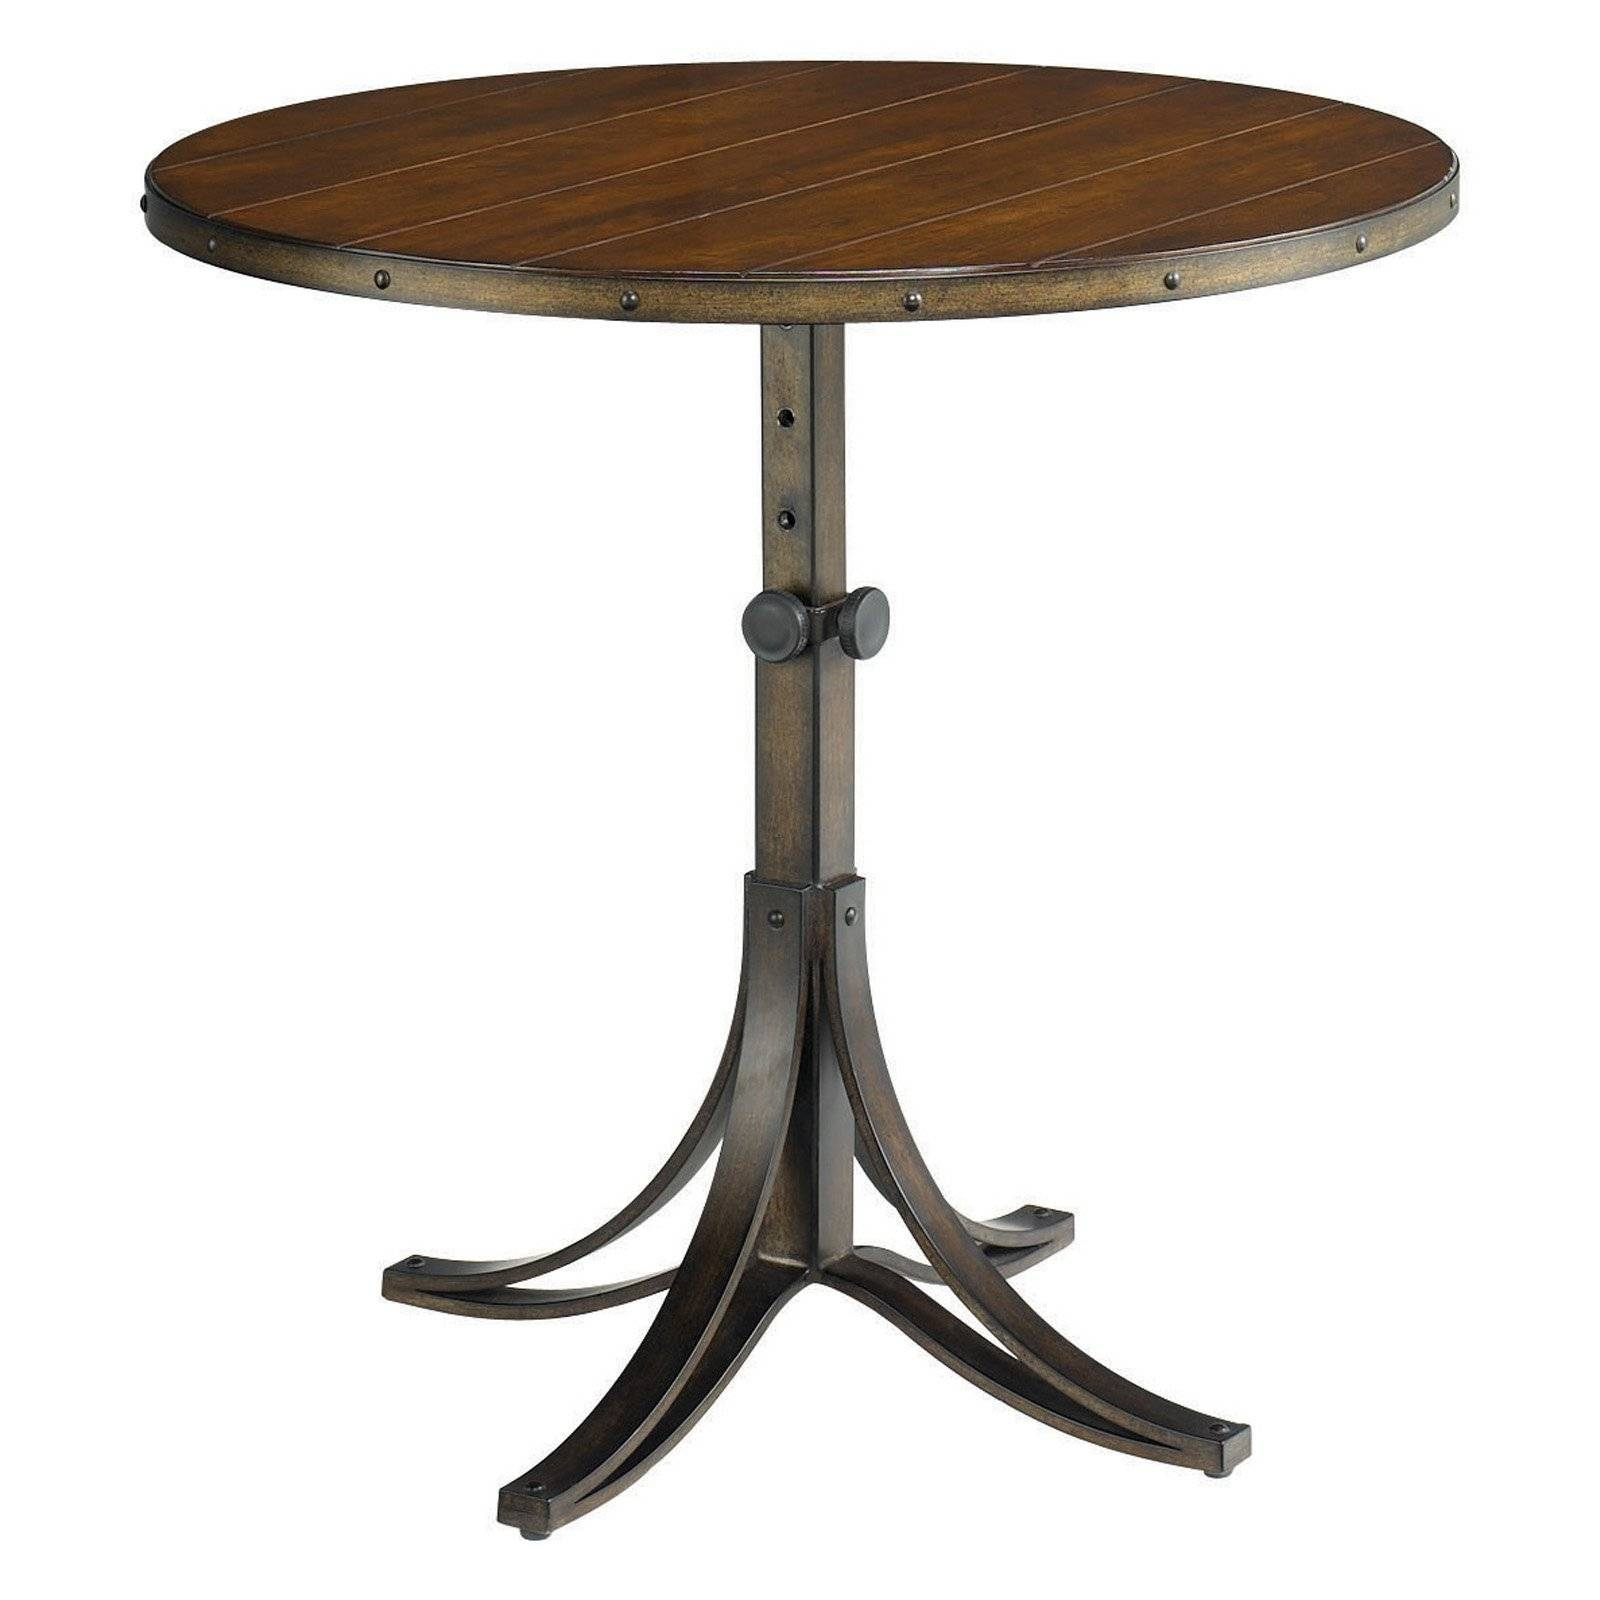 Adjustable Height Coffee Tables Very High Table Can Be Used Where pertaining to High Coffee Tables (Image 1 of 15)